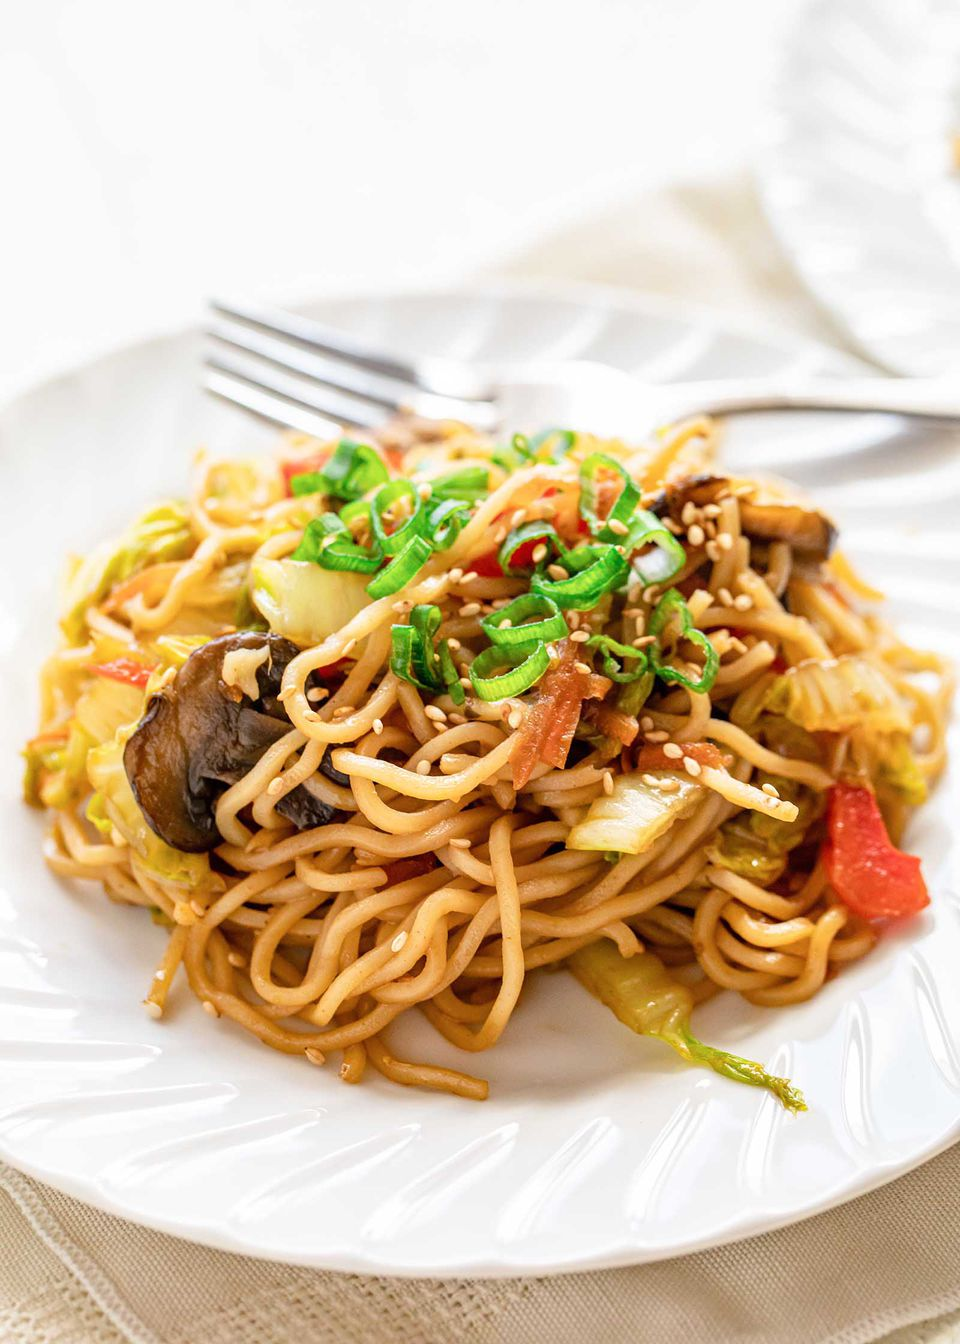 Plate of homemade vegetable lo mein.